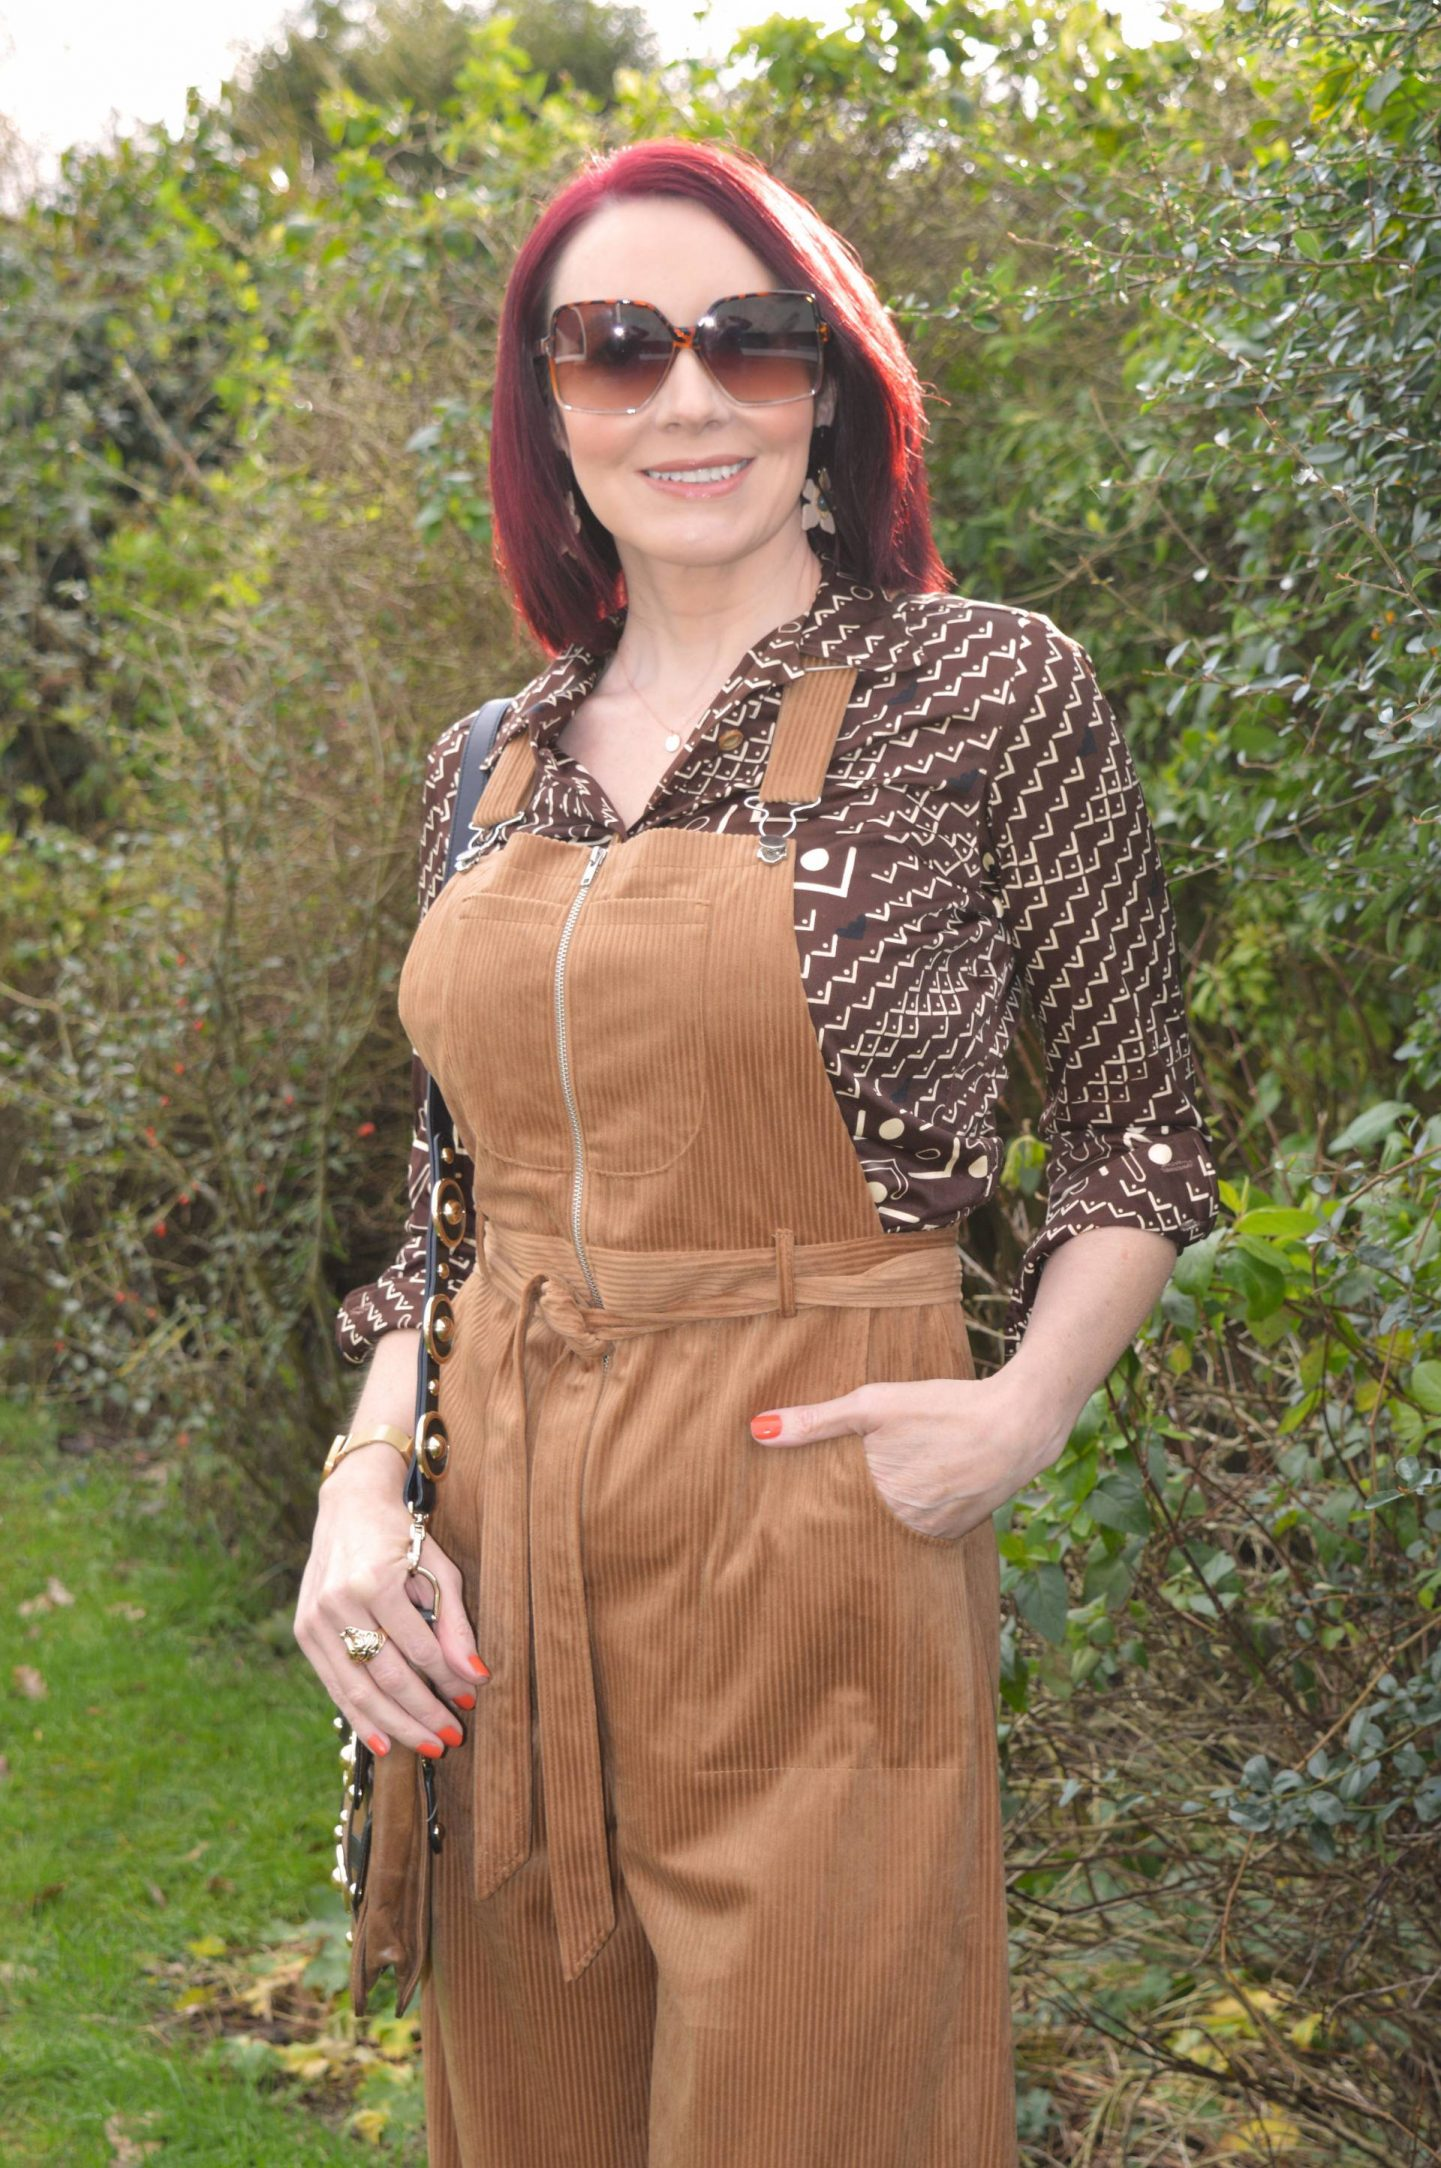 Asos Tan Cord Dungarees and Vintage Shirt